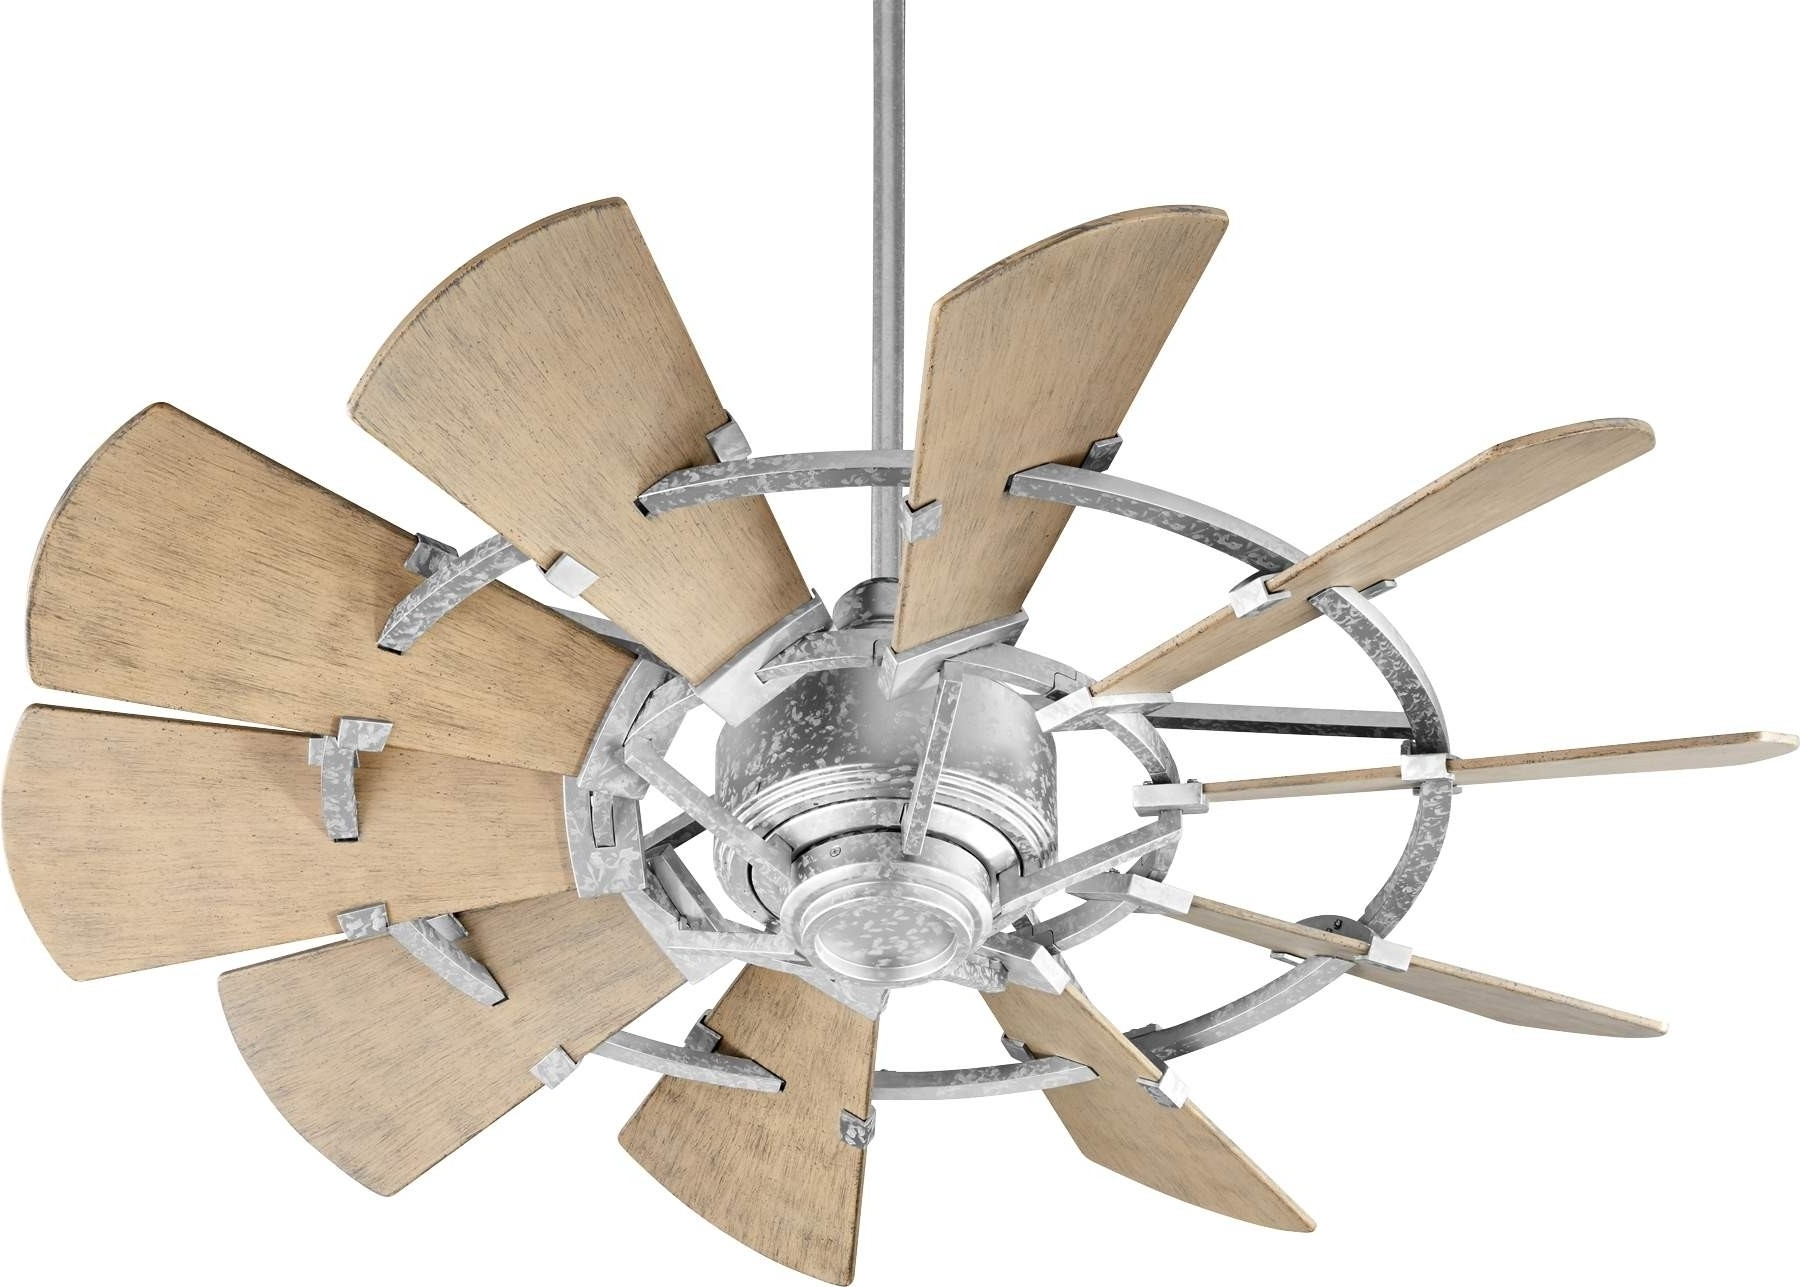 Preferred Quorum Windmill Ceiling Fan Model 194410 9 In Galvanized Inside Outdoor Windmill Ceiling Fans With Light (View 8 of 20)